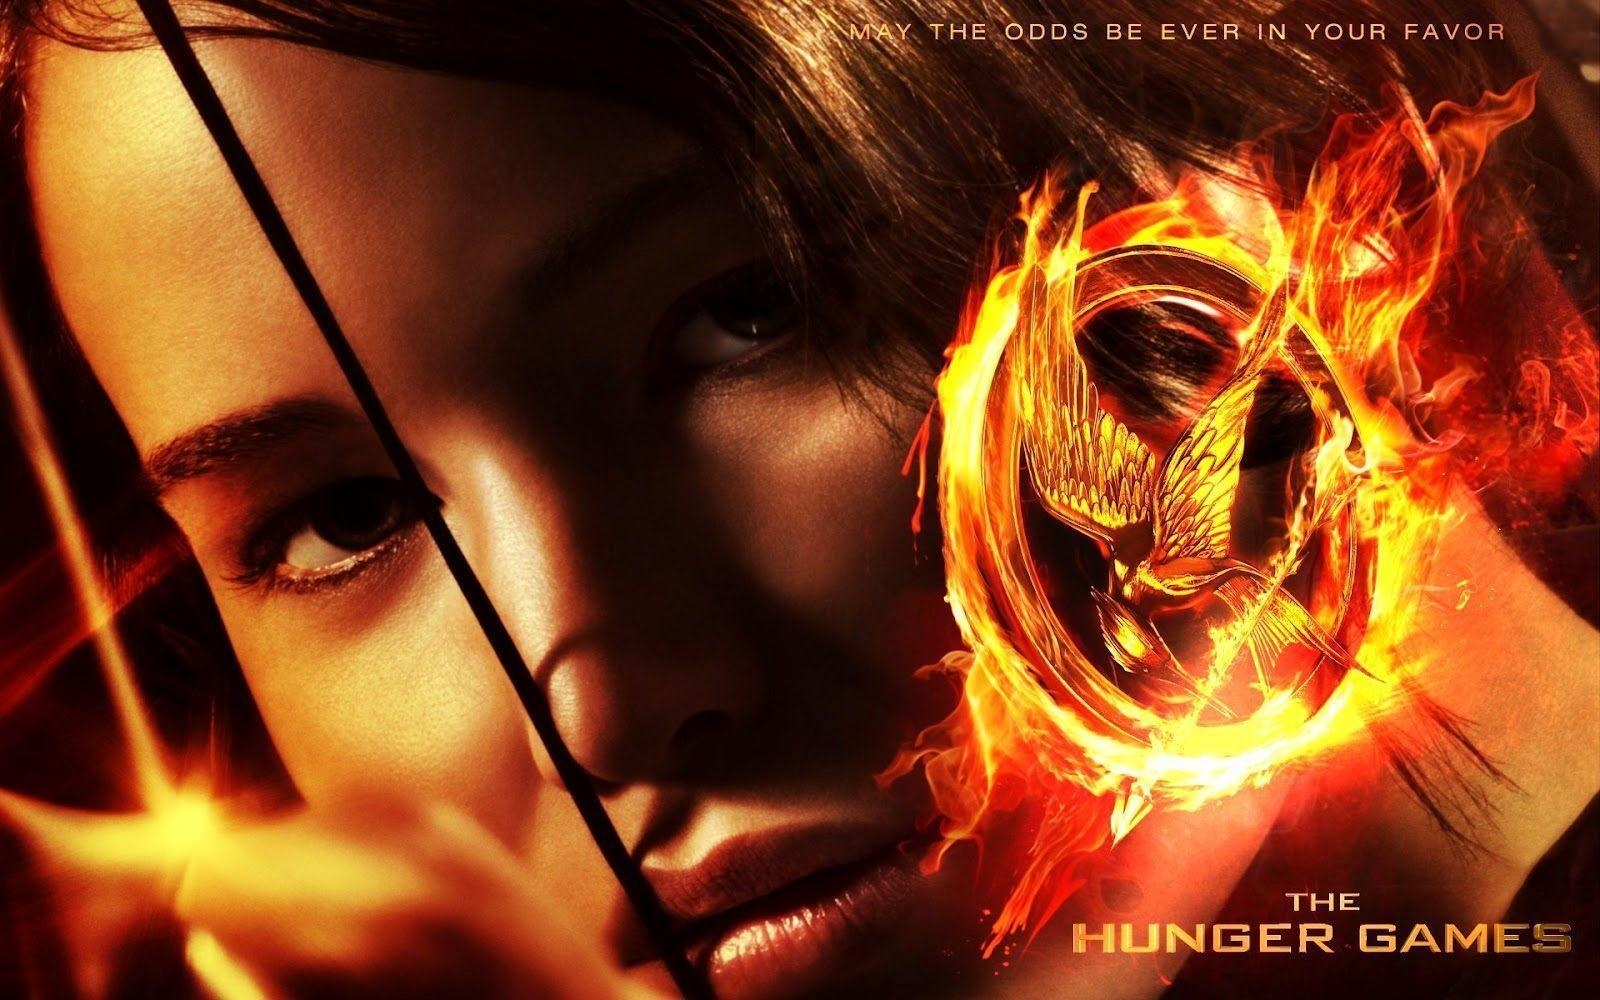 Outstanding Eyesurfing Hunger Games Movie Wallpapers 1600x1000PX